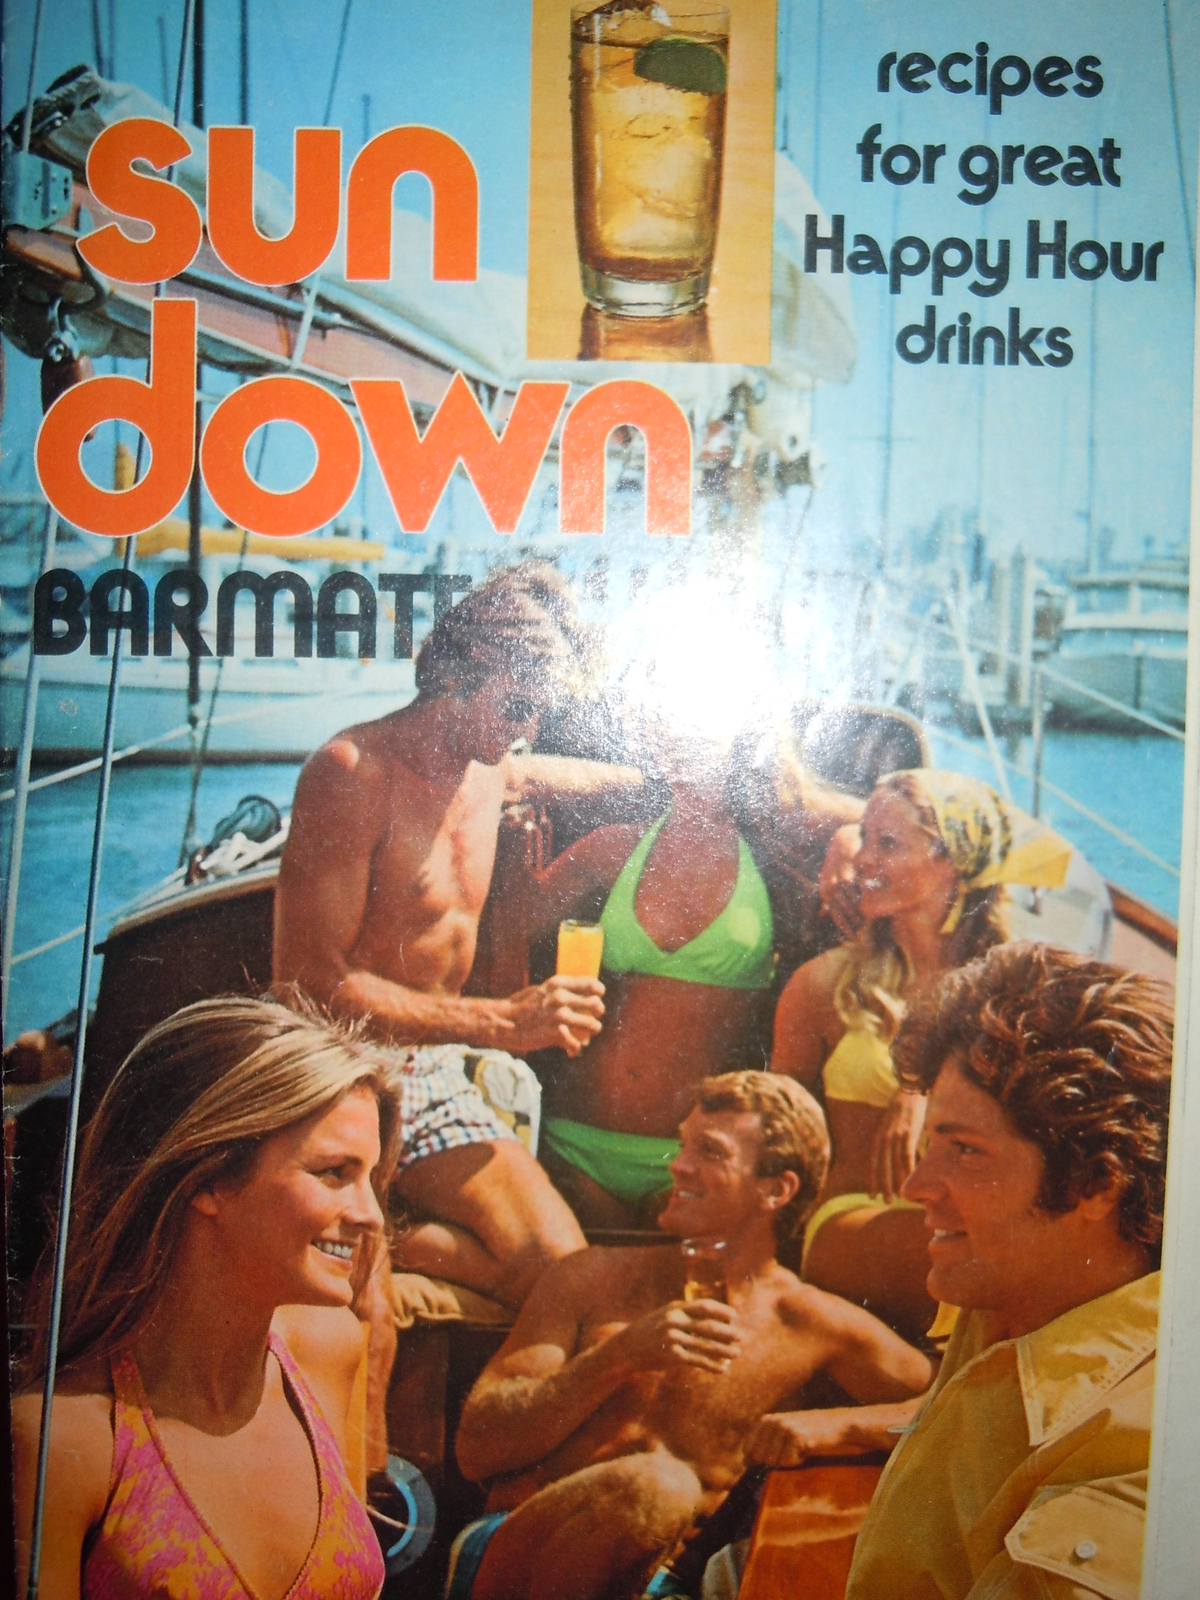 Sun Down Barmate Southern Comfort Mixed Drinks Recipe Booklet 1974 - $5.99